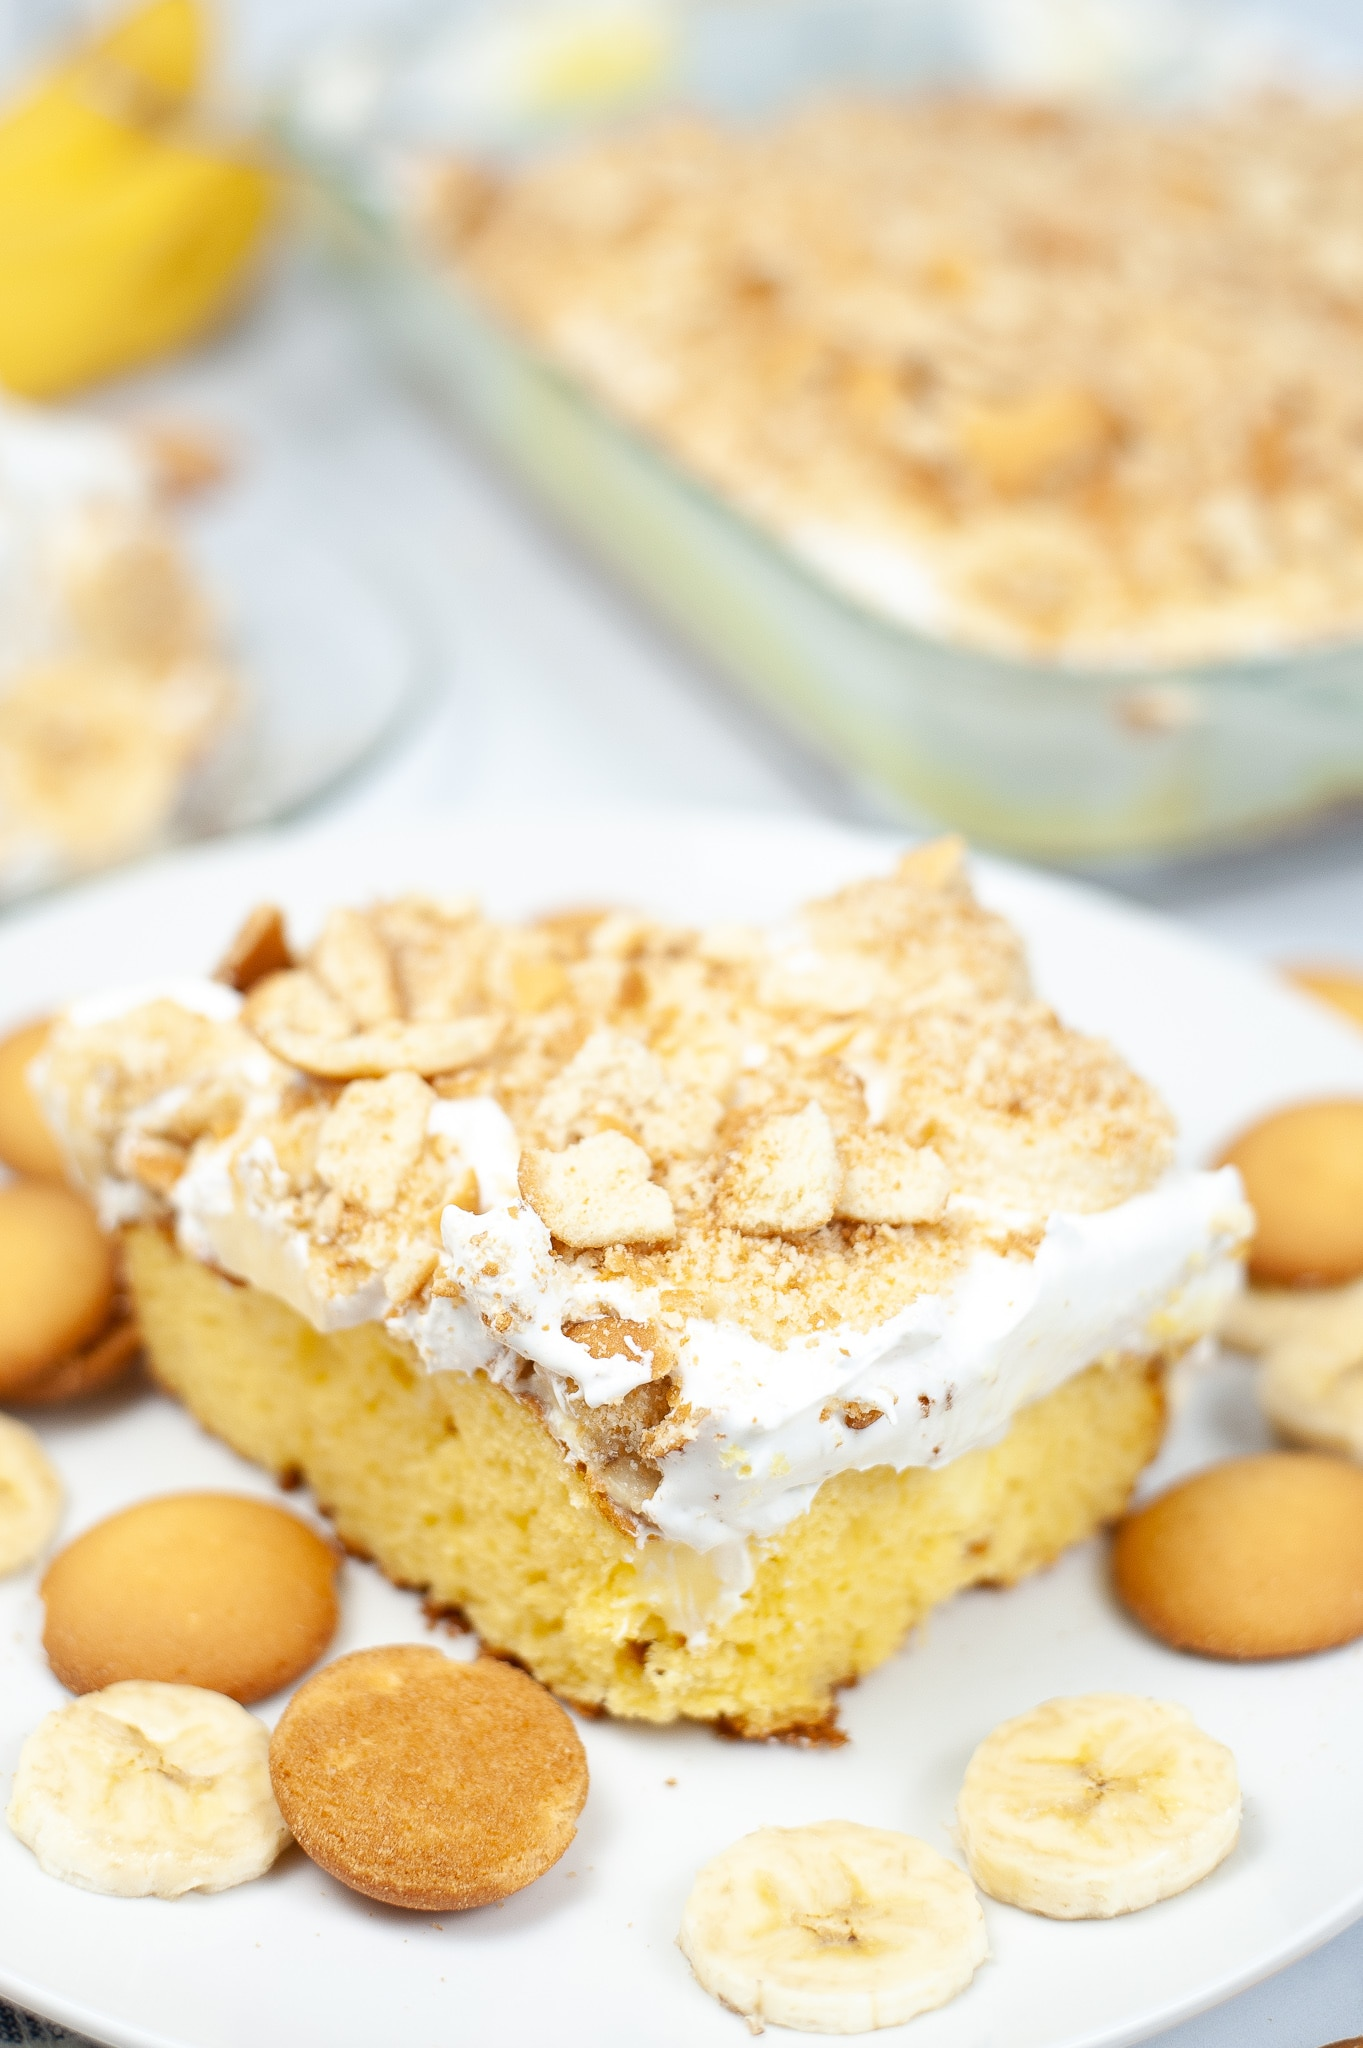 banana poke cake recipe on white plate surrounded by vanilla wafers and sliced bananas